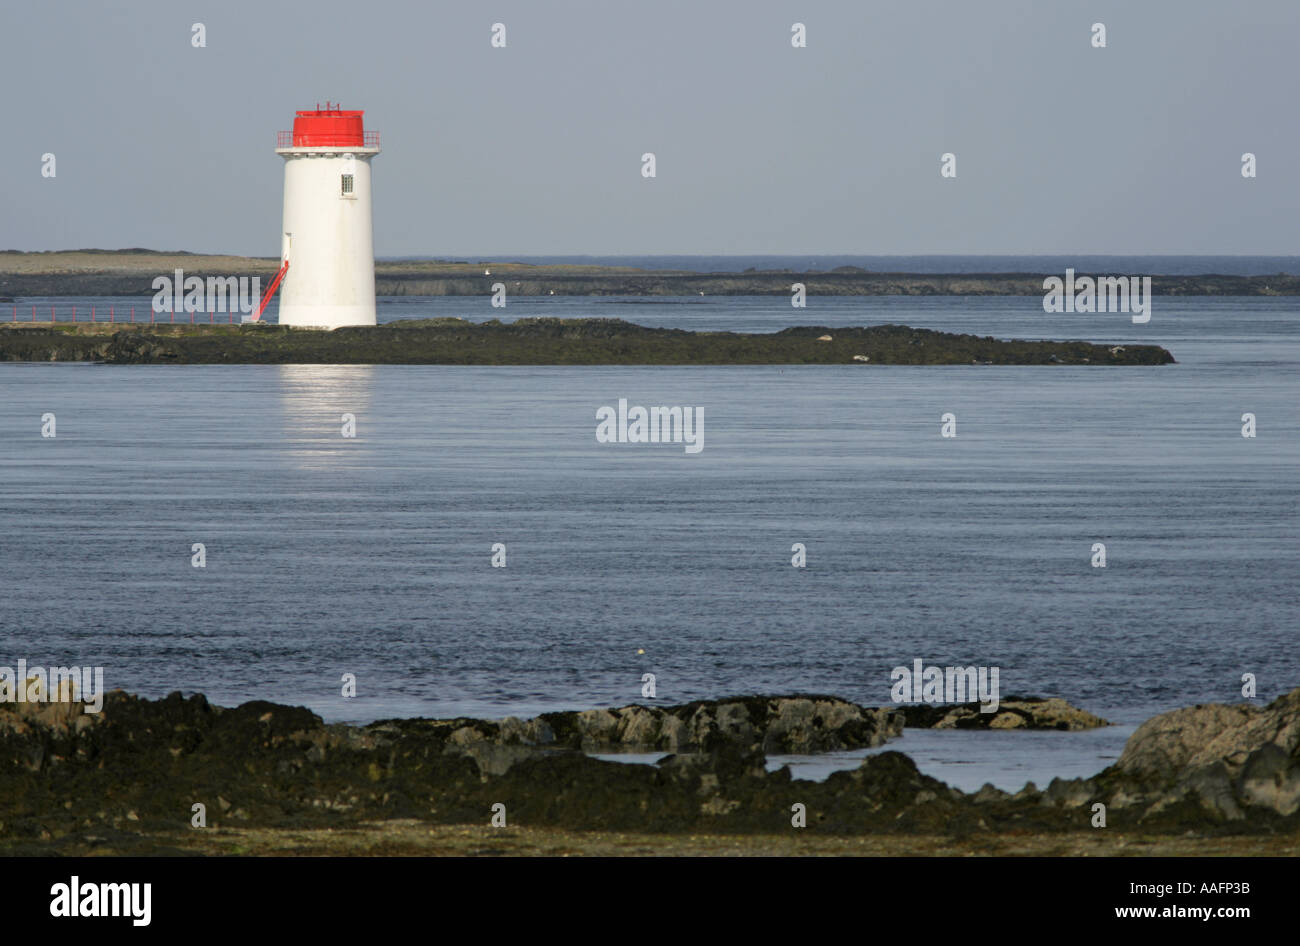 solar powered lighthouse at Angus Rock Strangford Lough County Down Northern Ireland - Stock Image